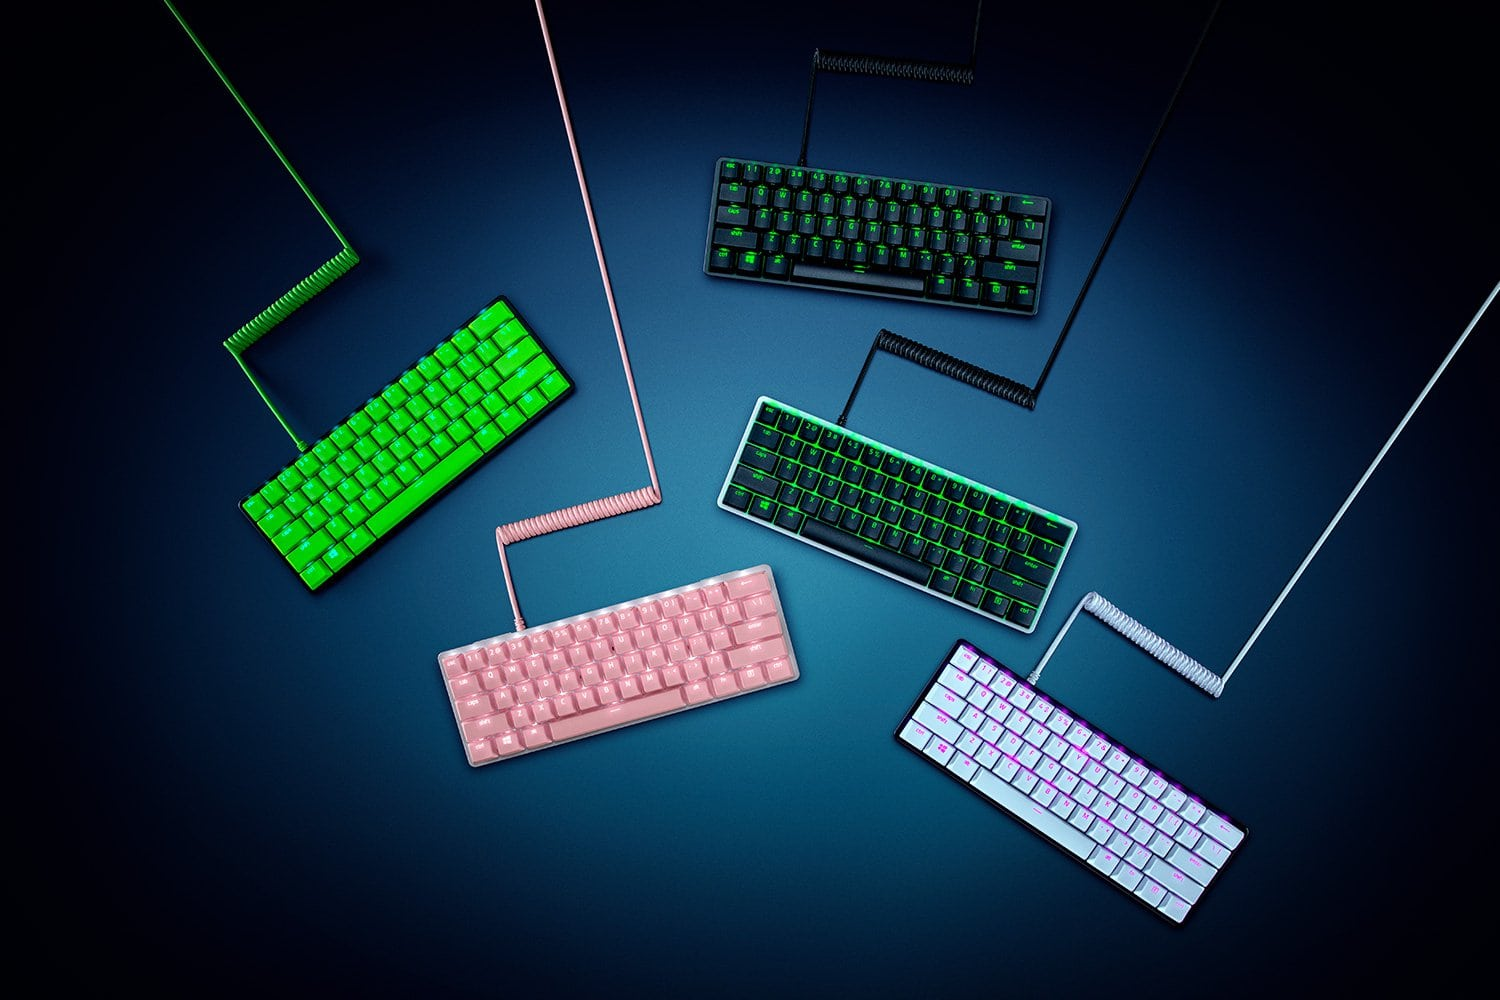 Razer's PBT Keycap + Coiled Cable Upgrade Set comes in multiple colors.